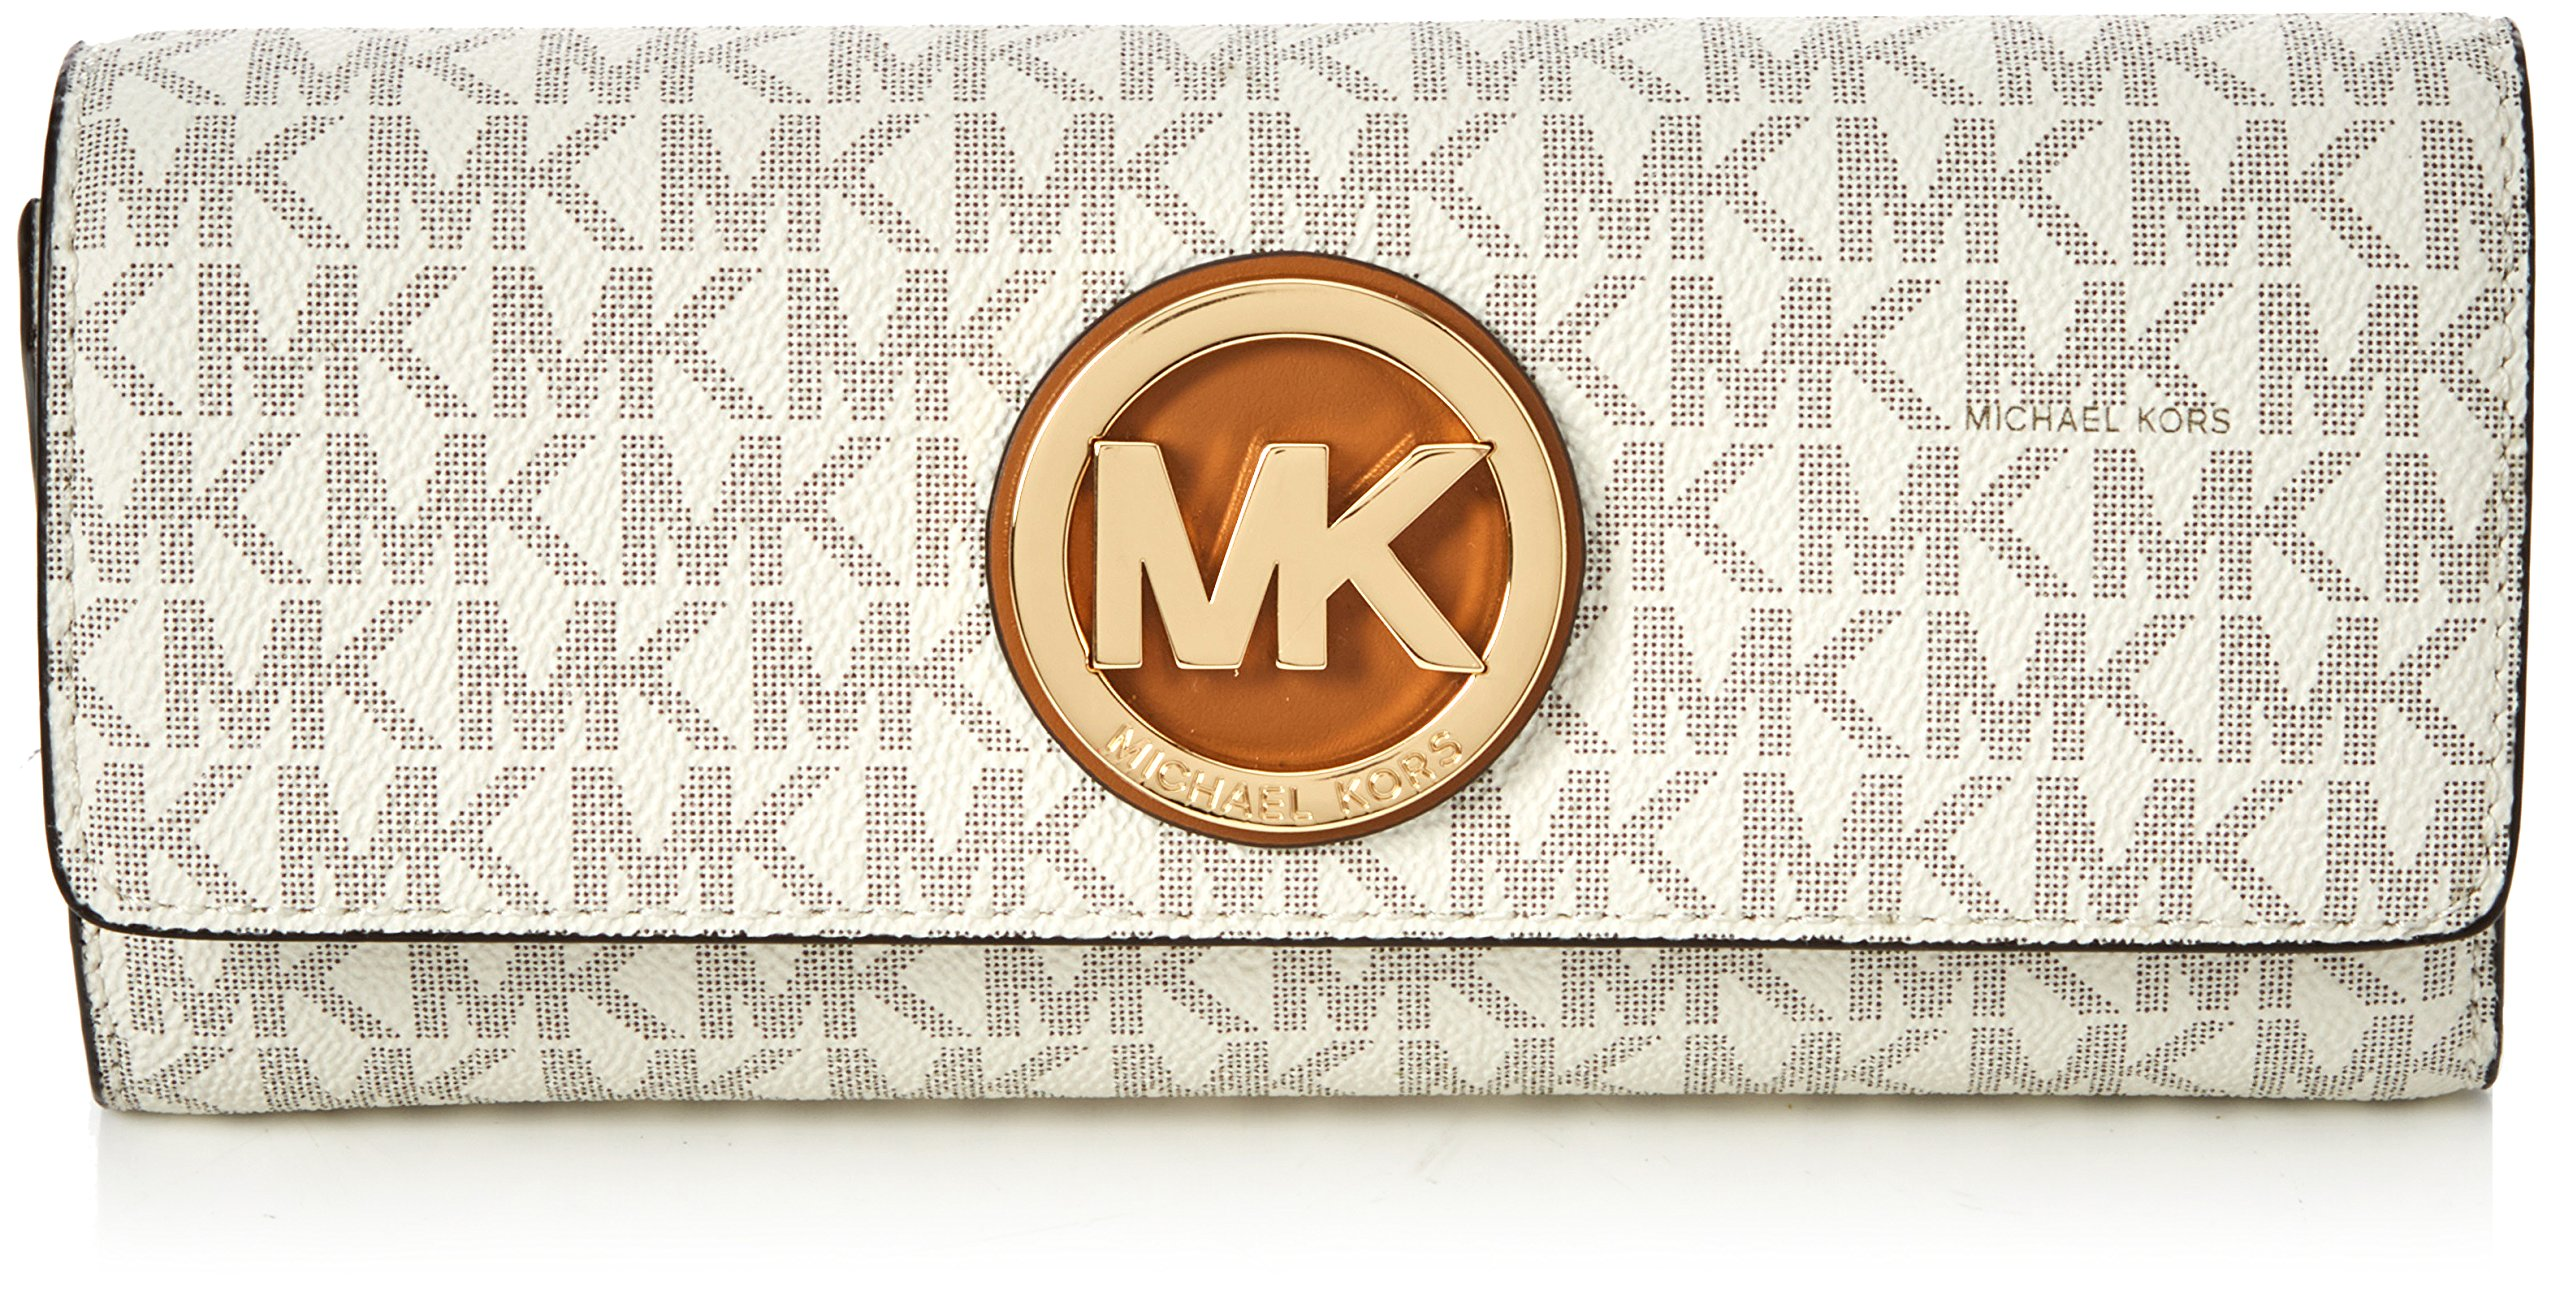 MICHAEL KORS PVC Leather Fulton Flap Continental Wallet, 32S7GFTE3B VANILLA by MICHAEL Michael Kors